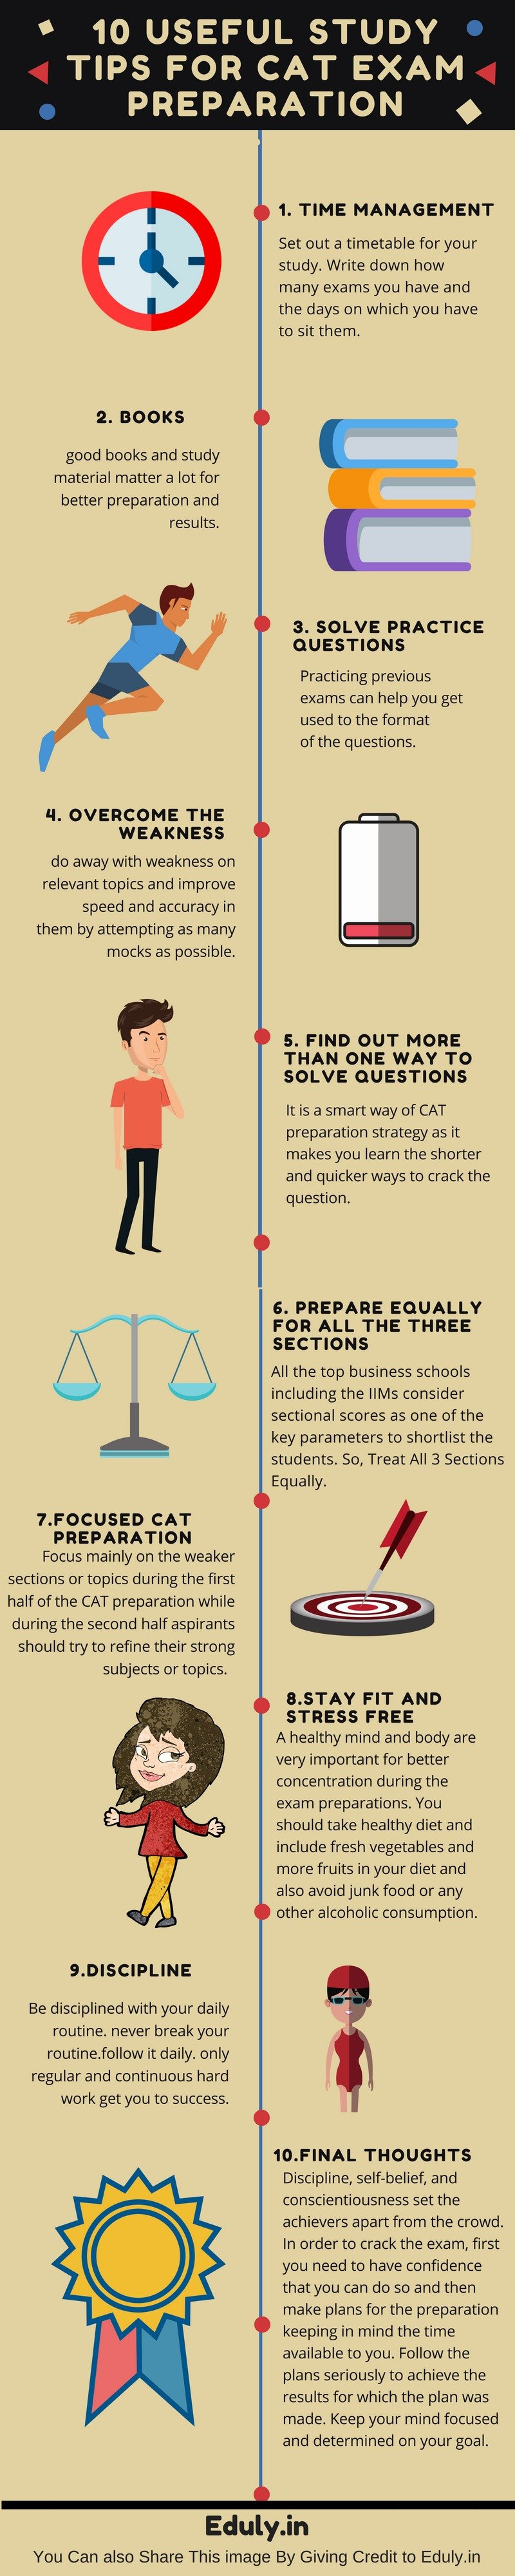 10 Useful Study Tips FortheCAT